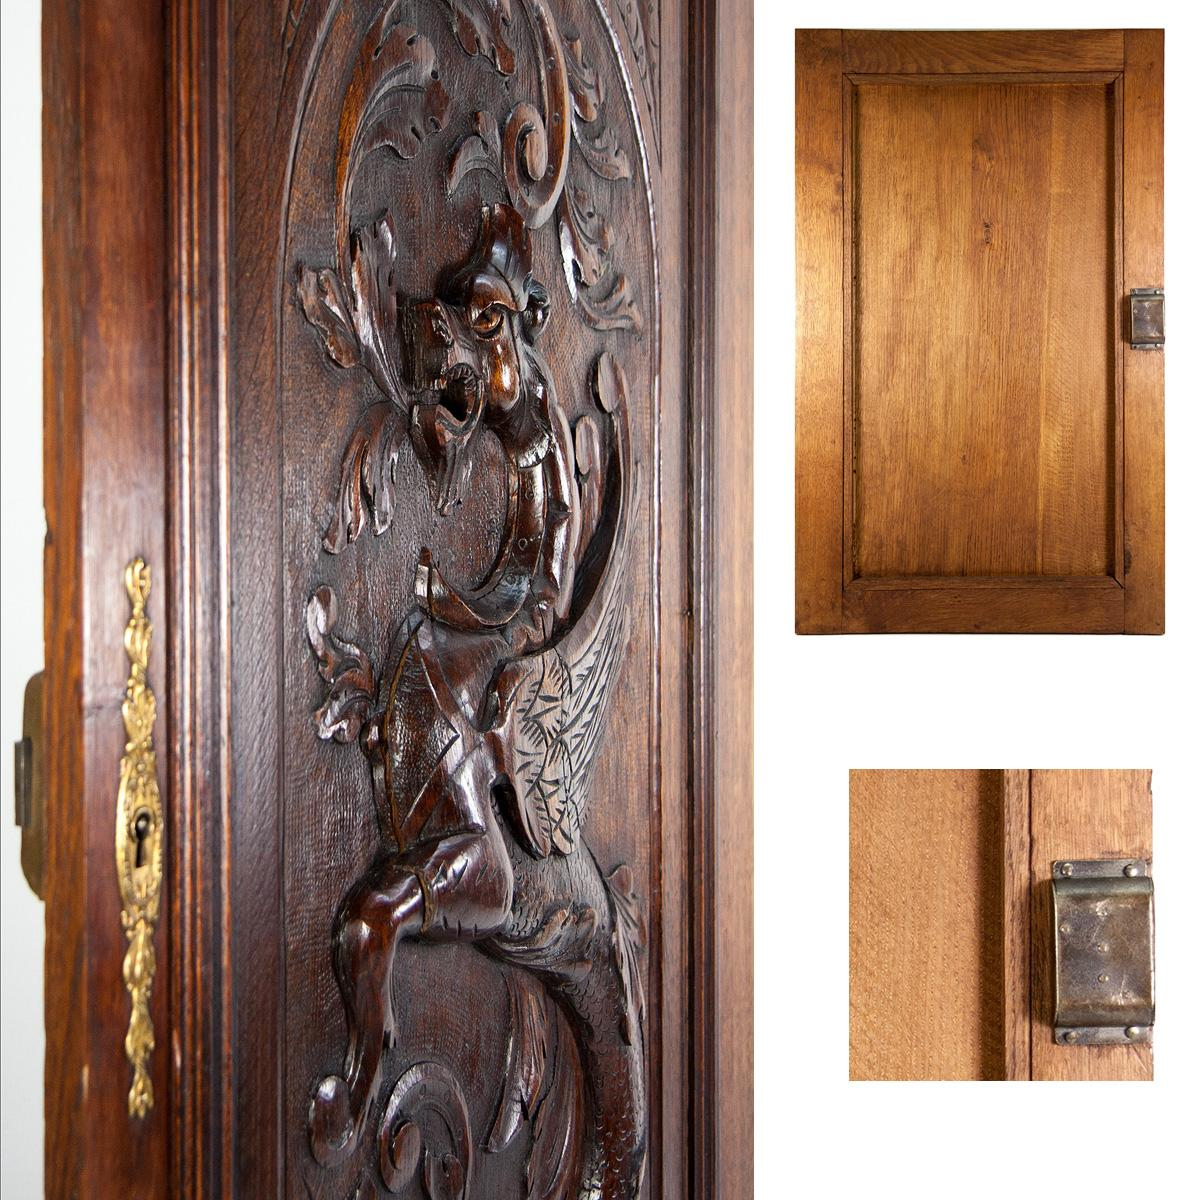 Antique French Carved Wood Cabinetry Door Plaque With Neo